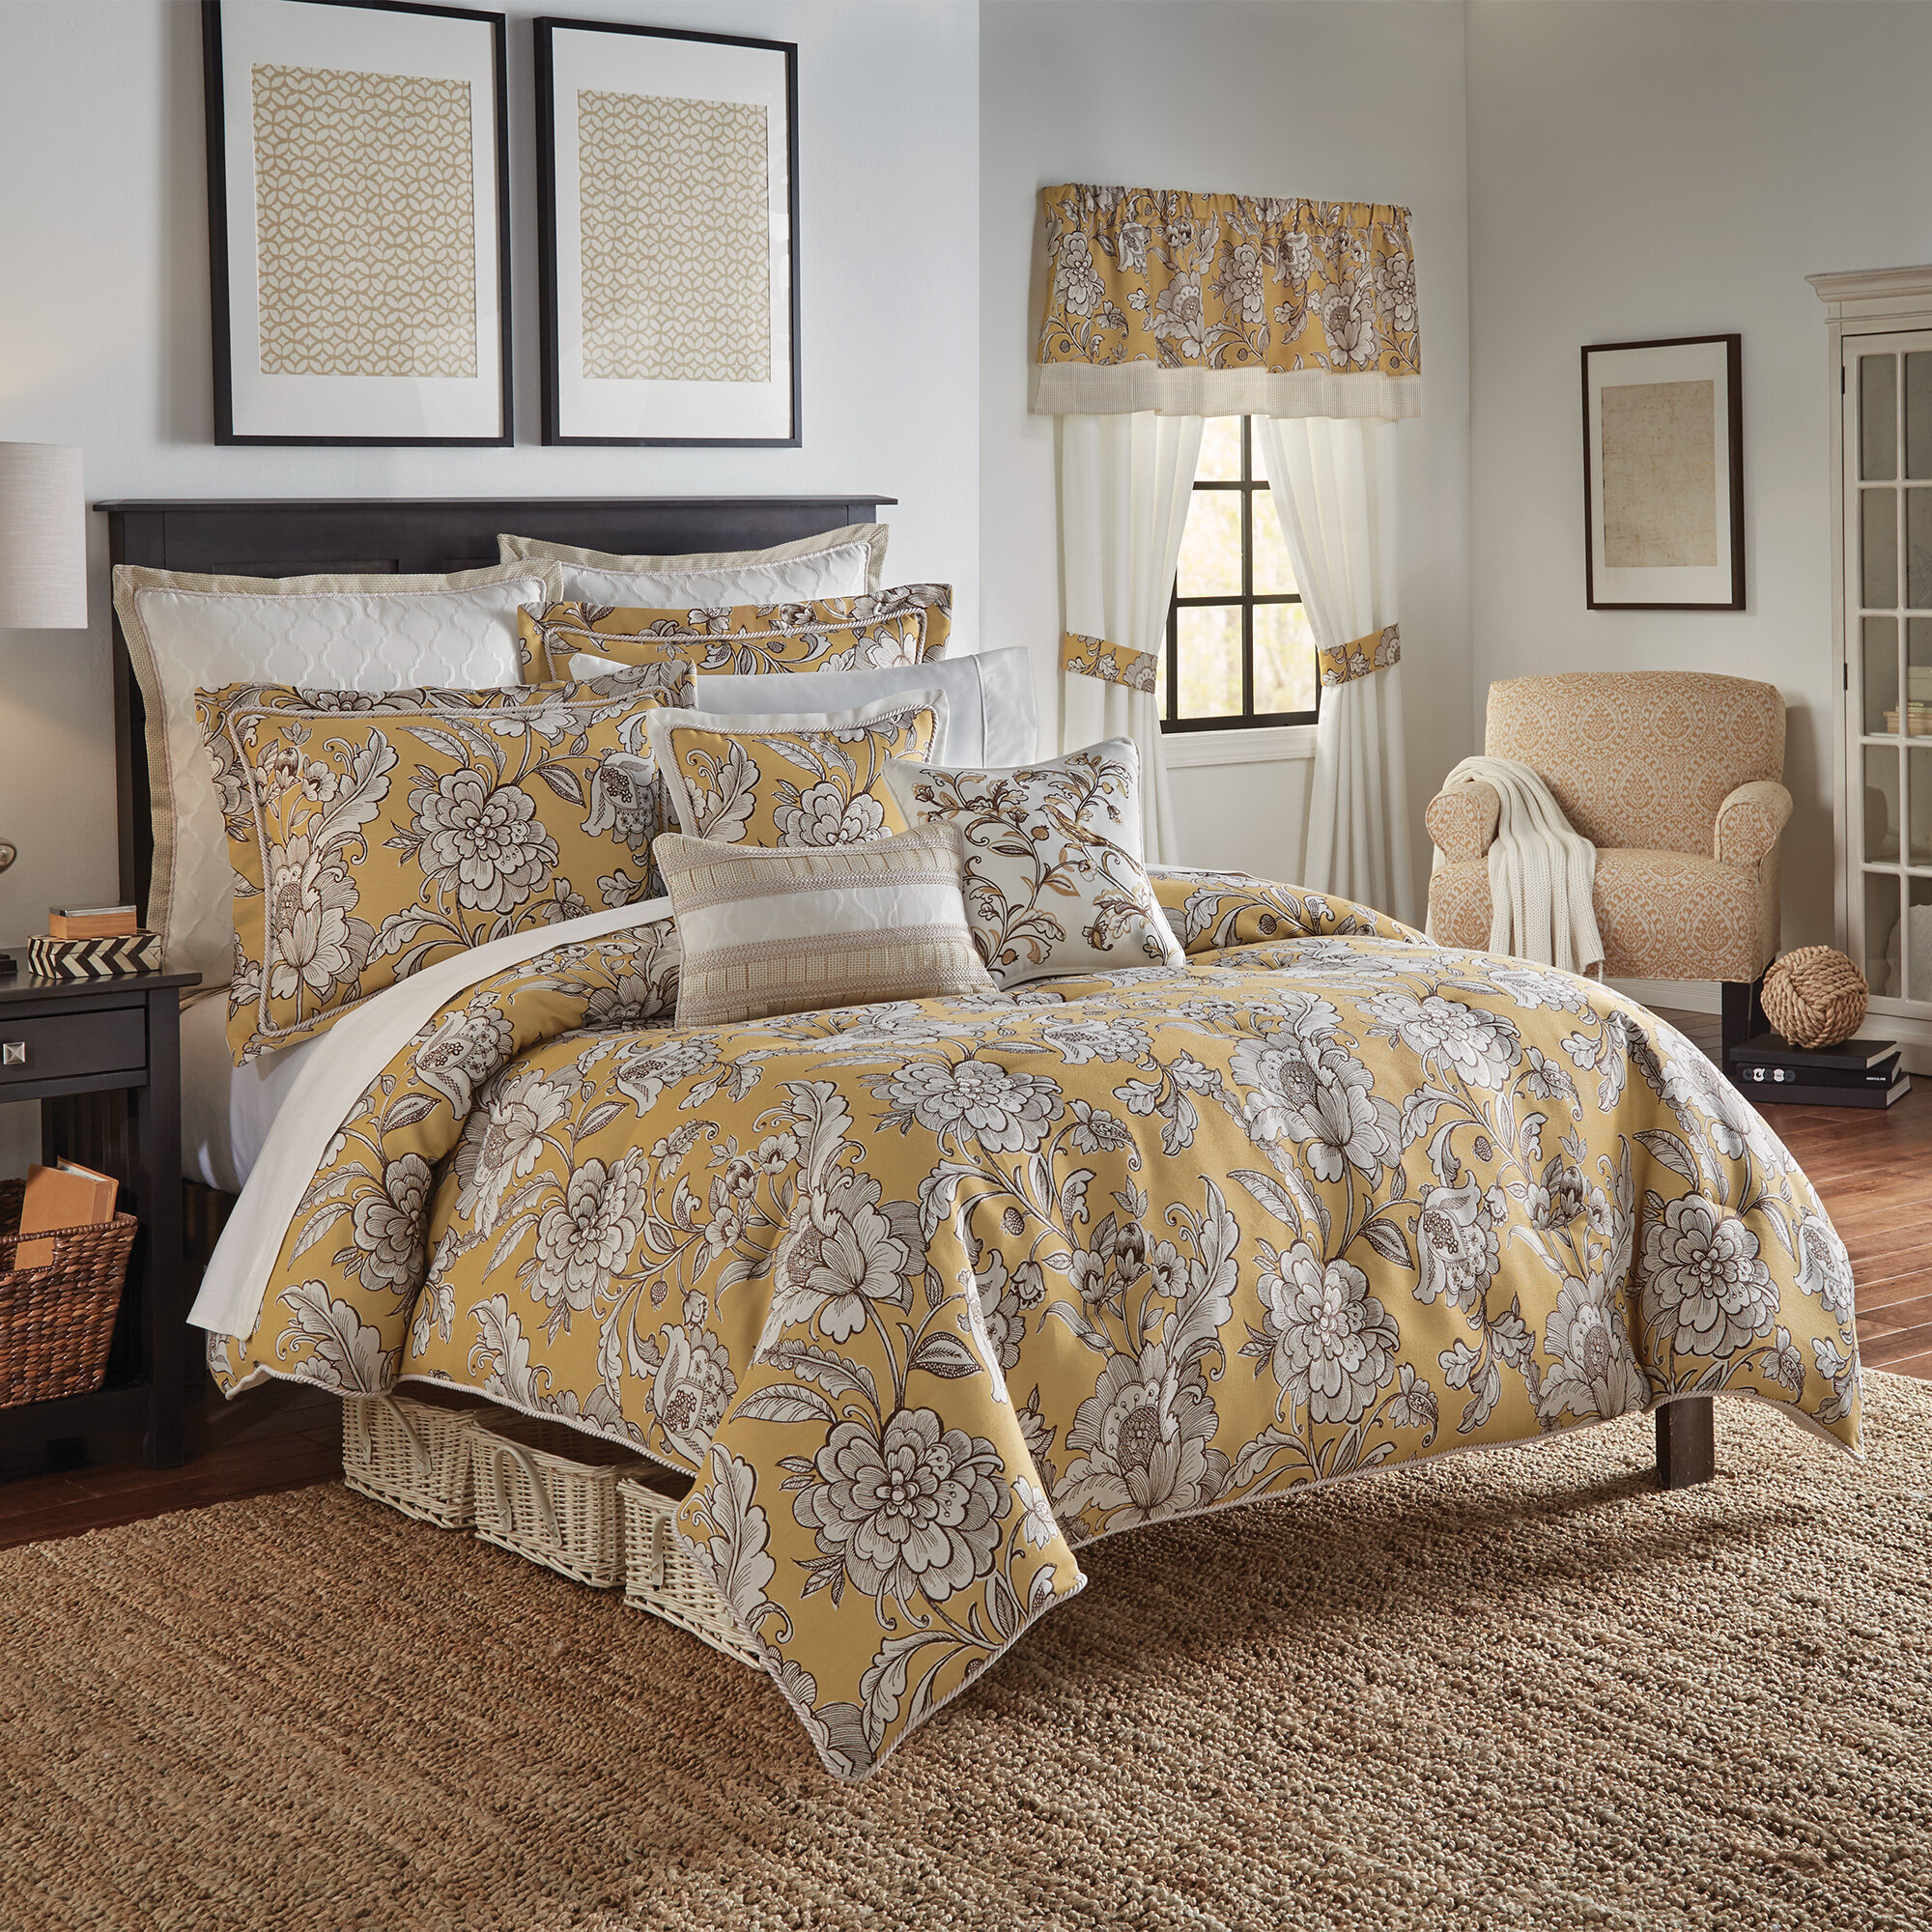 designs antique vintage uk yellow country bedspreads shabby rose comforter french sets retro bedspread gray bedding print victorian croscill chic